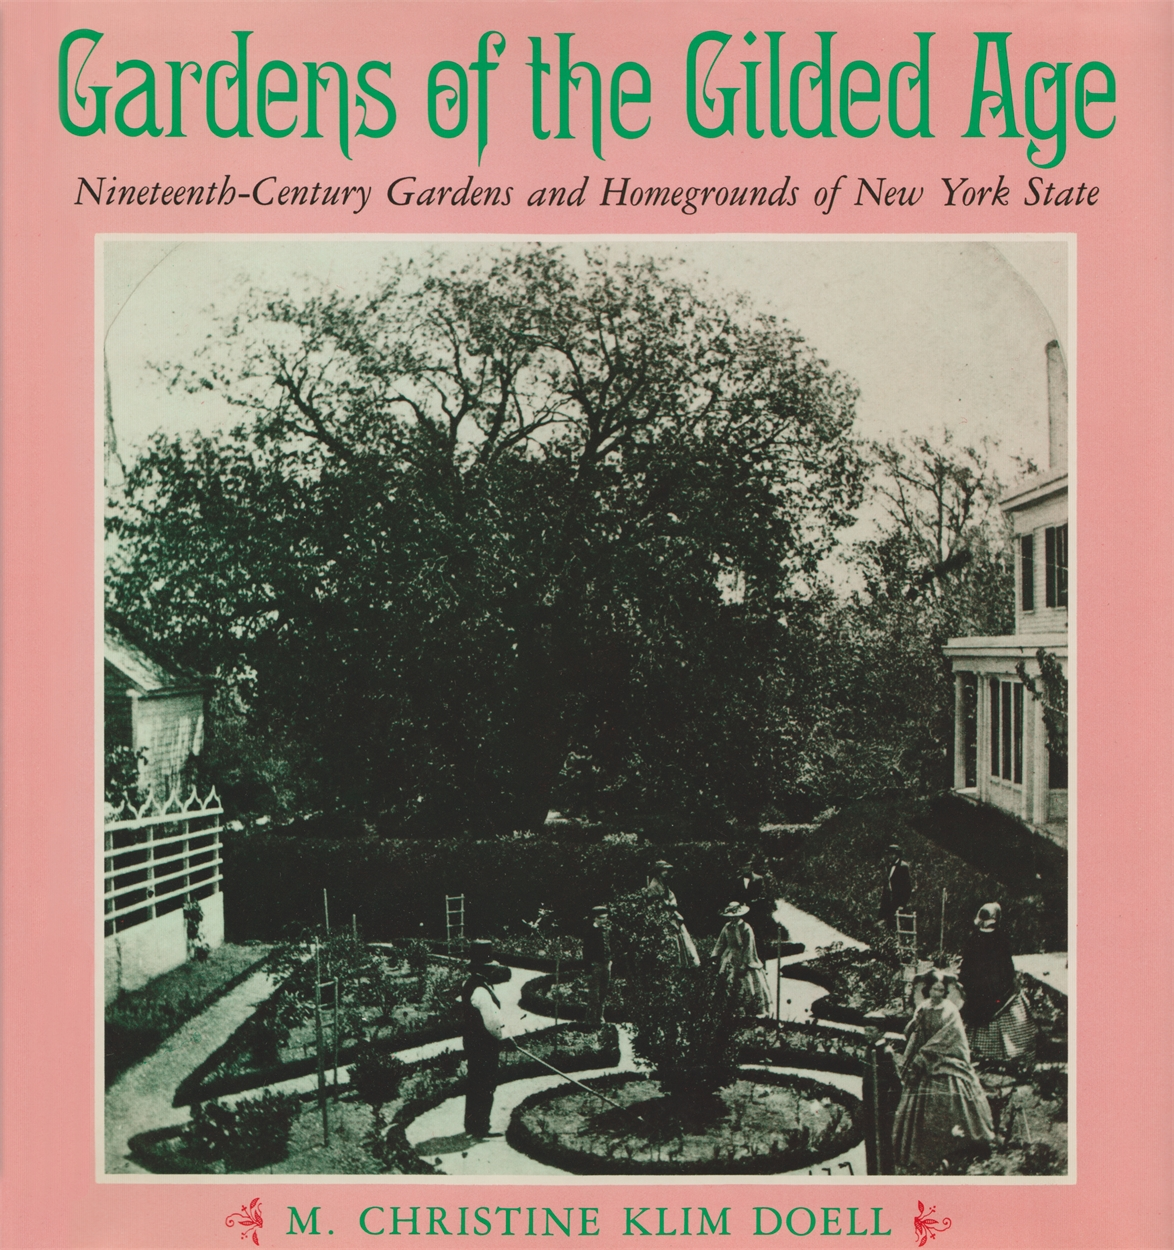 Gardens of the Gilded Age